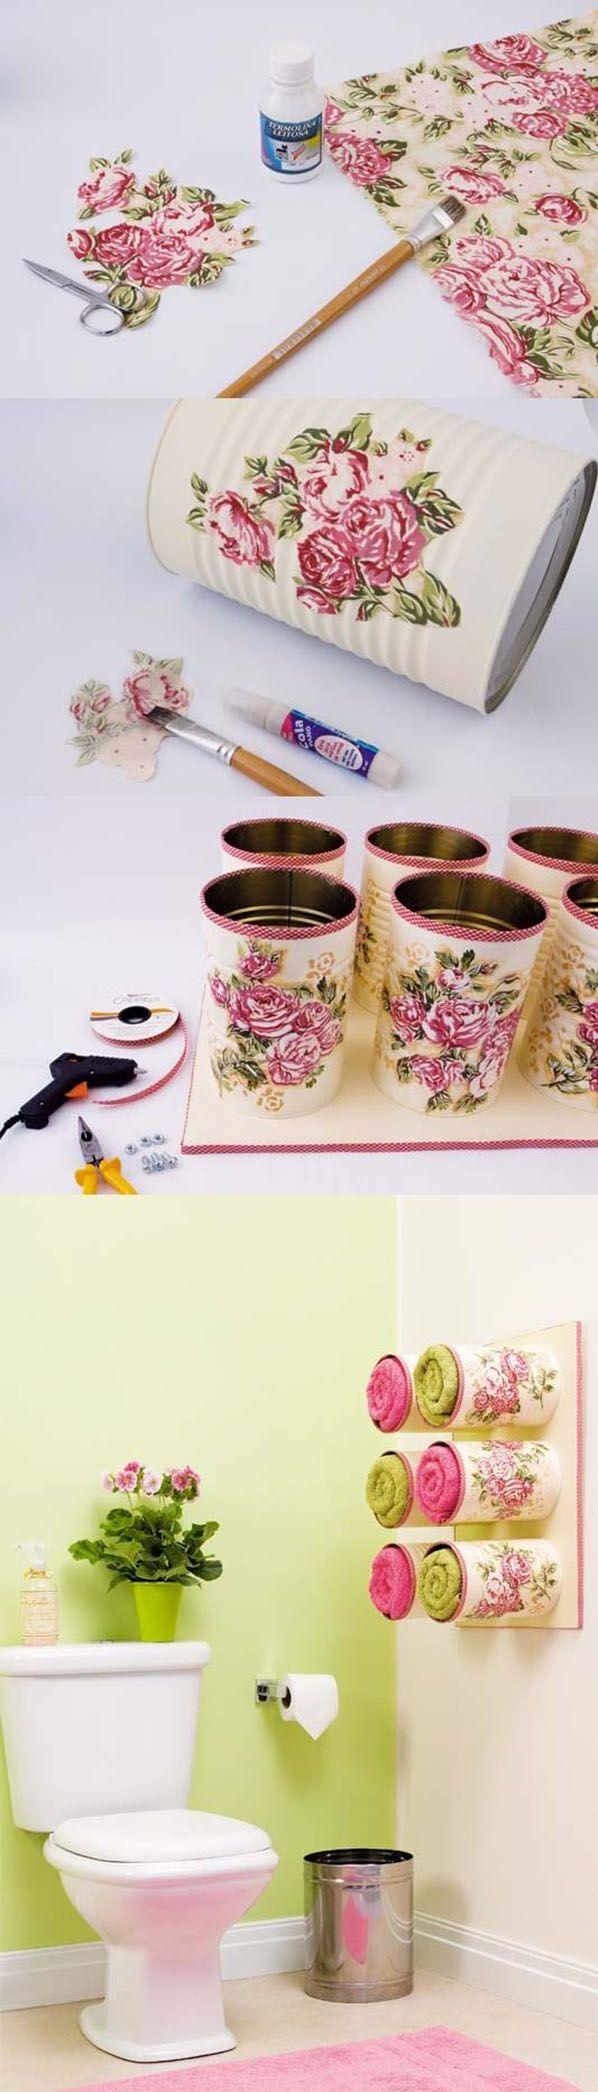 Upcycling, decora con reciclaje www.manualidadesytendencias.com #latas #crafts #upcycling #recycling #reciclaje #ideas #decoupage #cans